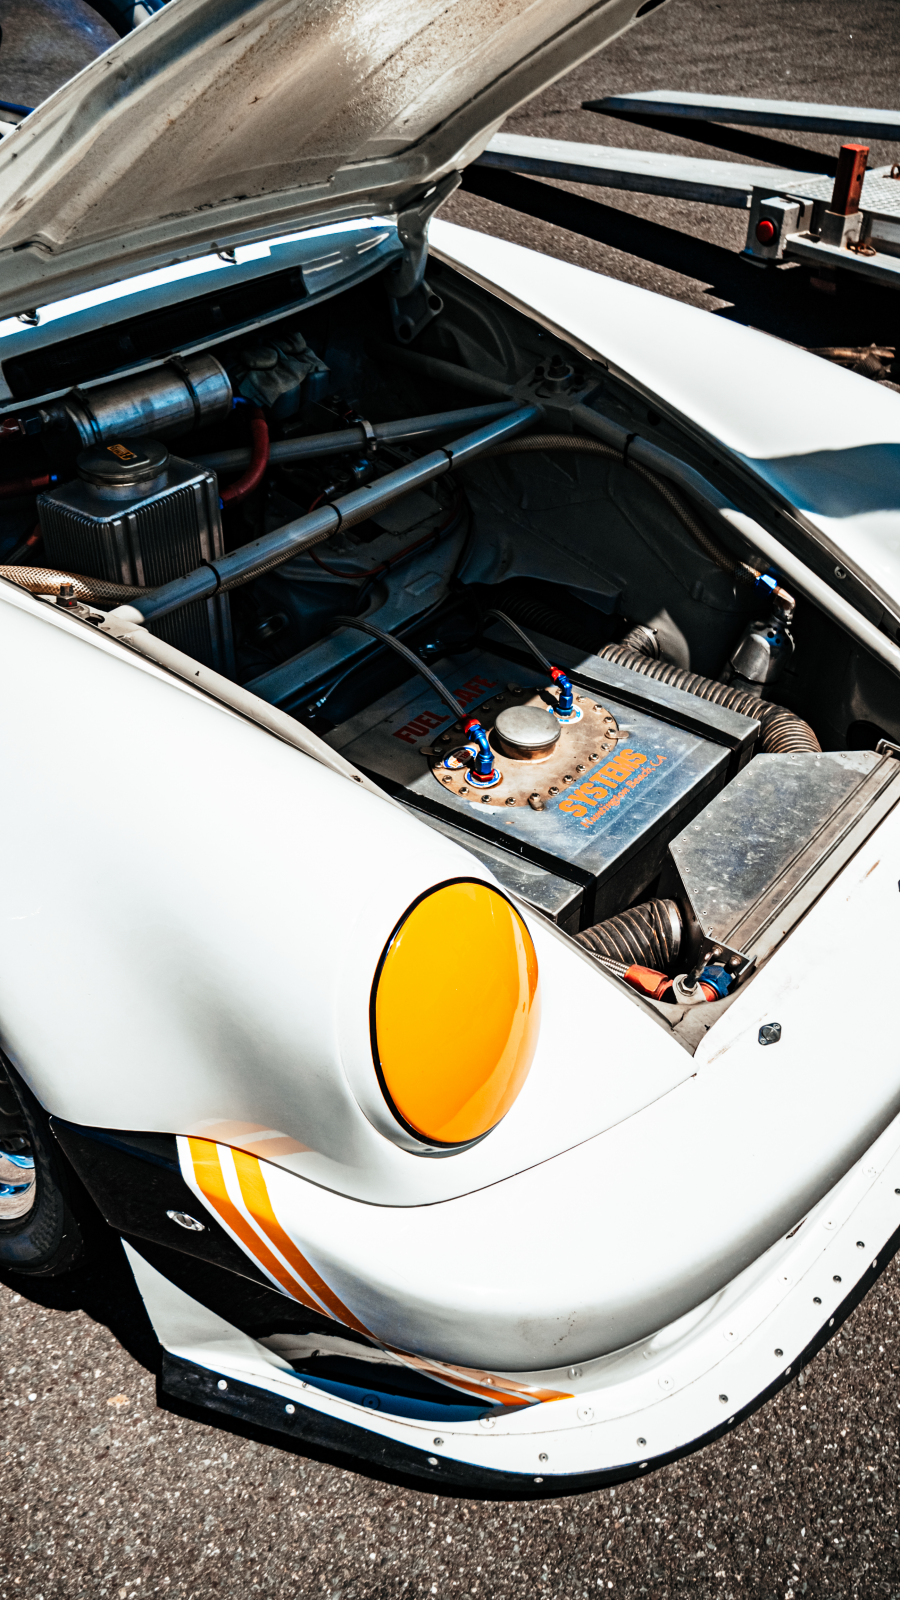 1974 Porsche 911 RSR Coupe 930 Turbo chassis Racer $obo For Sale (picture 3 of 6)